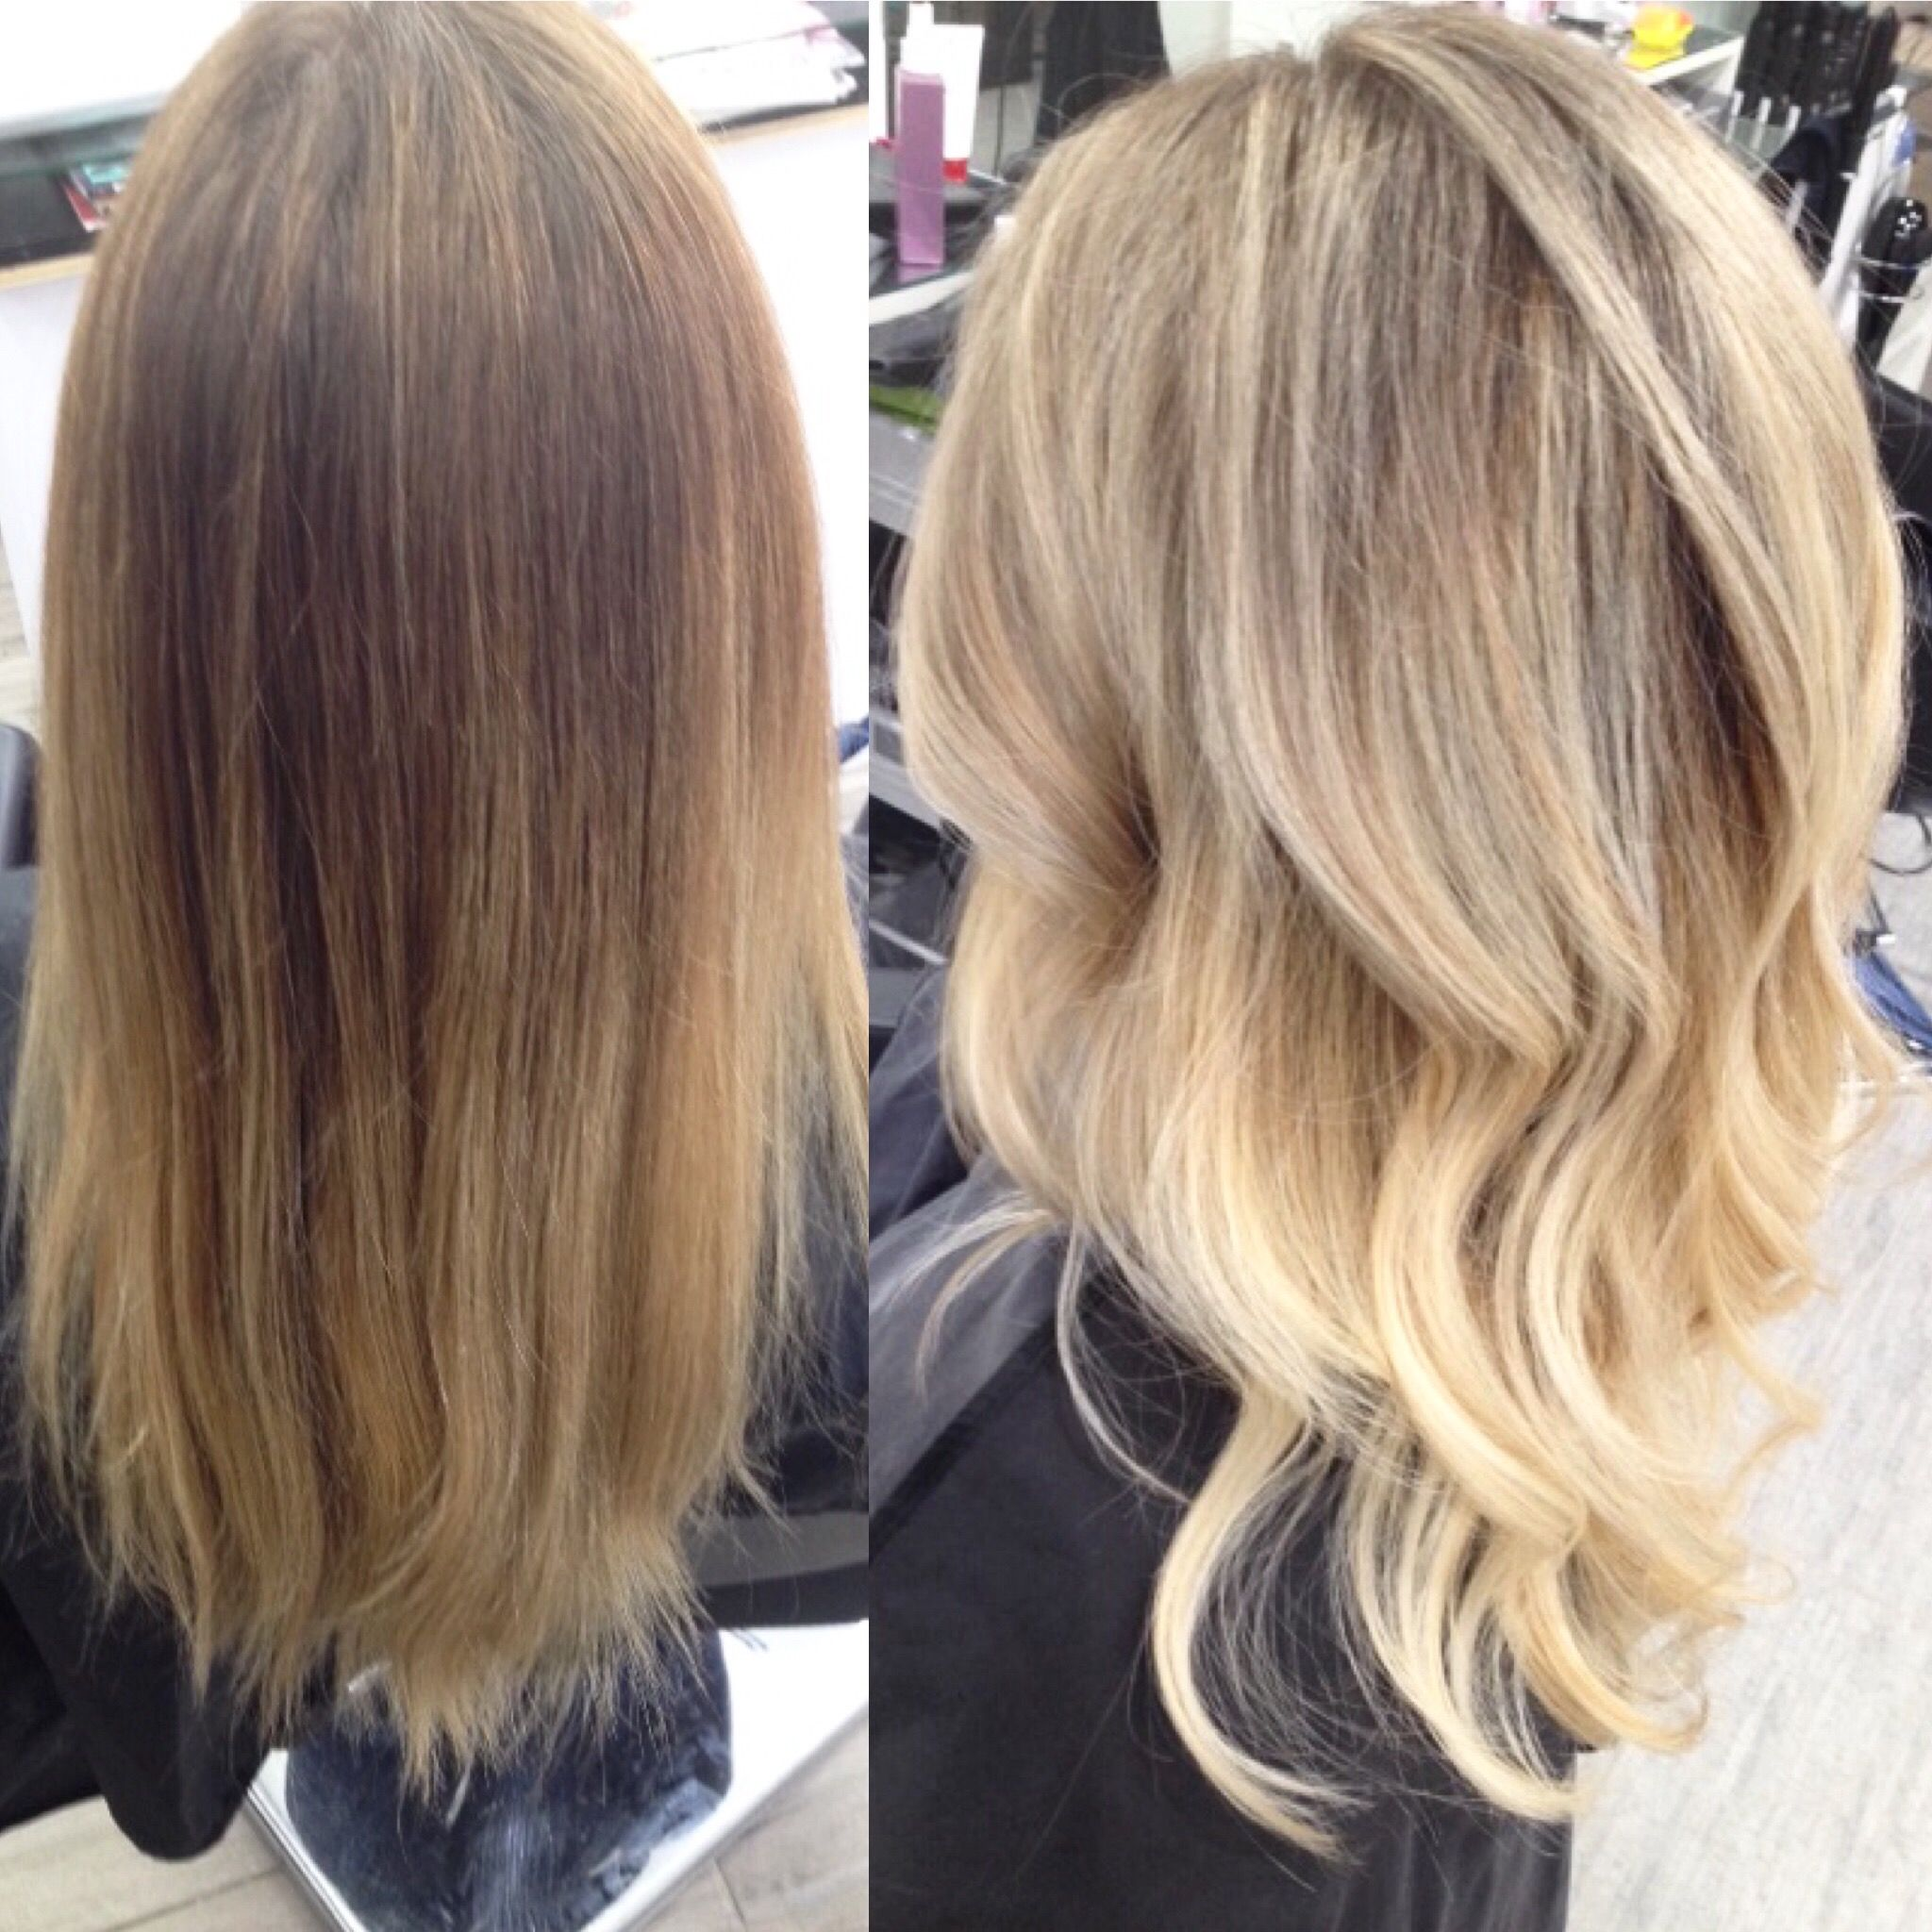 A Lovely Full Head Of Light Blonde Highlights On Our